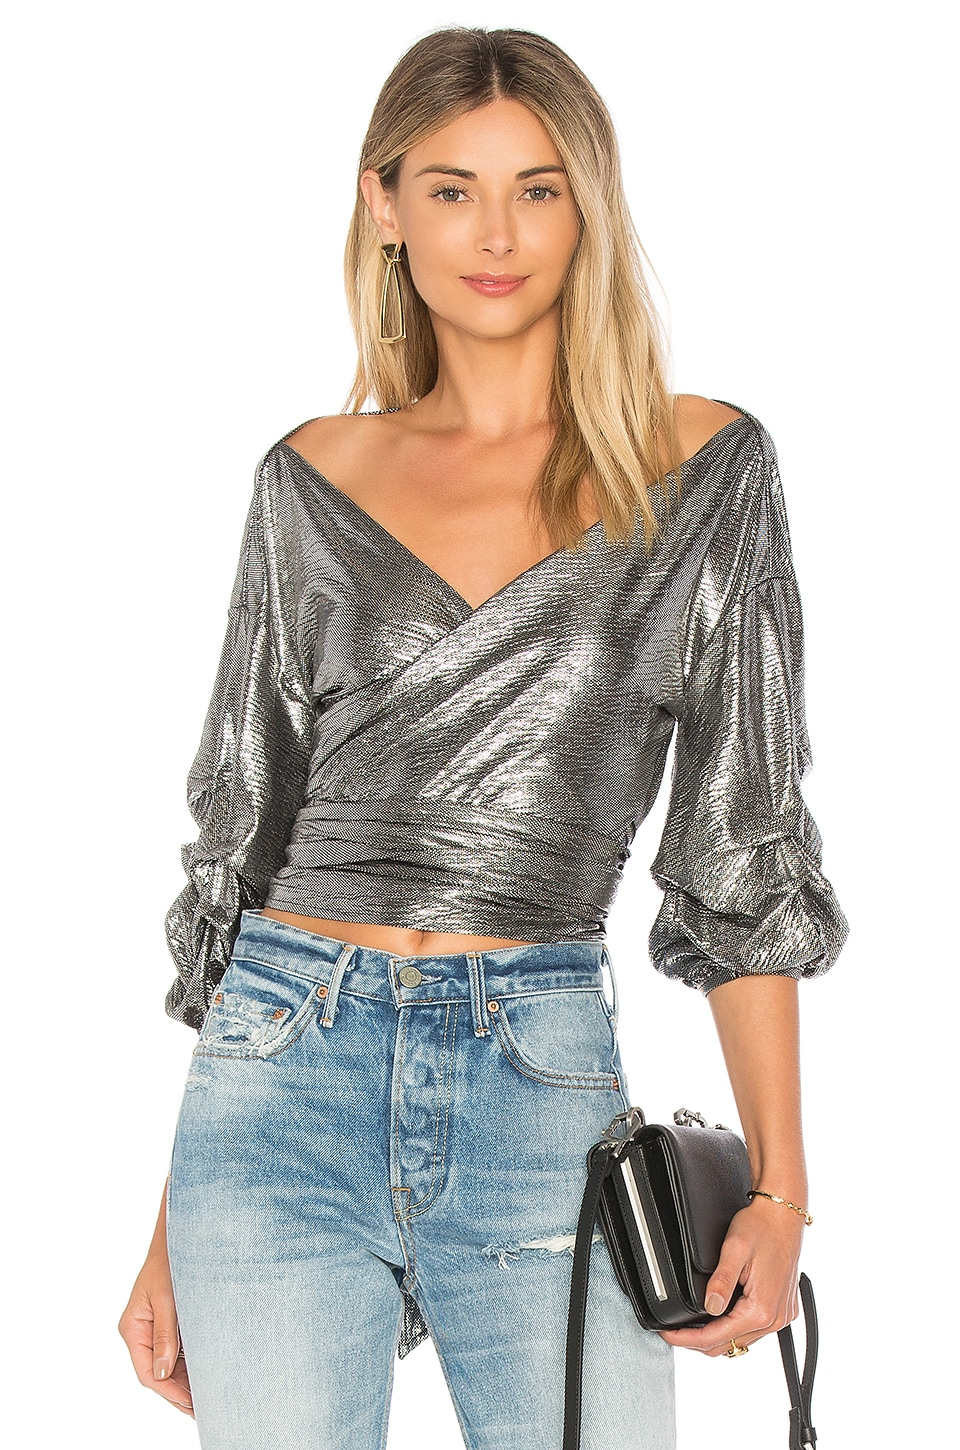 Lovers + Friends Bow Blouse in Silver